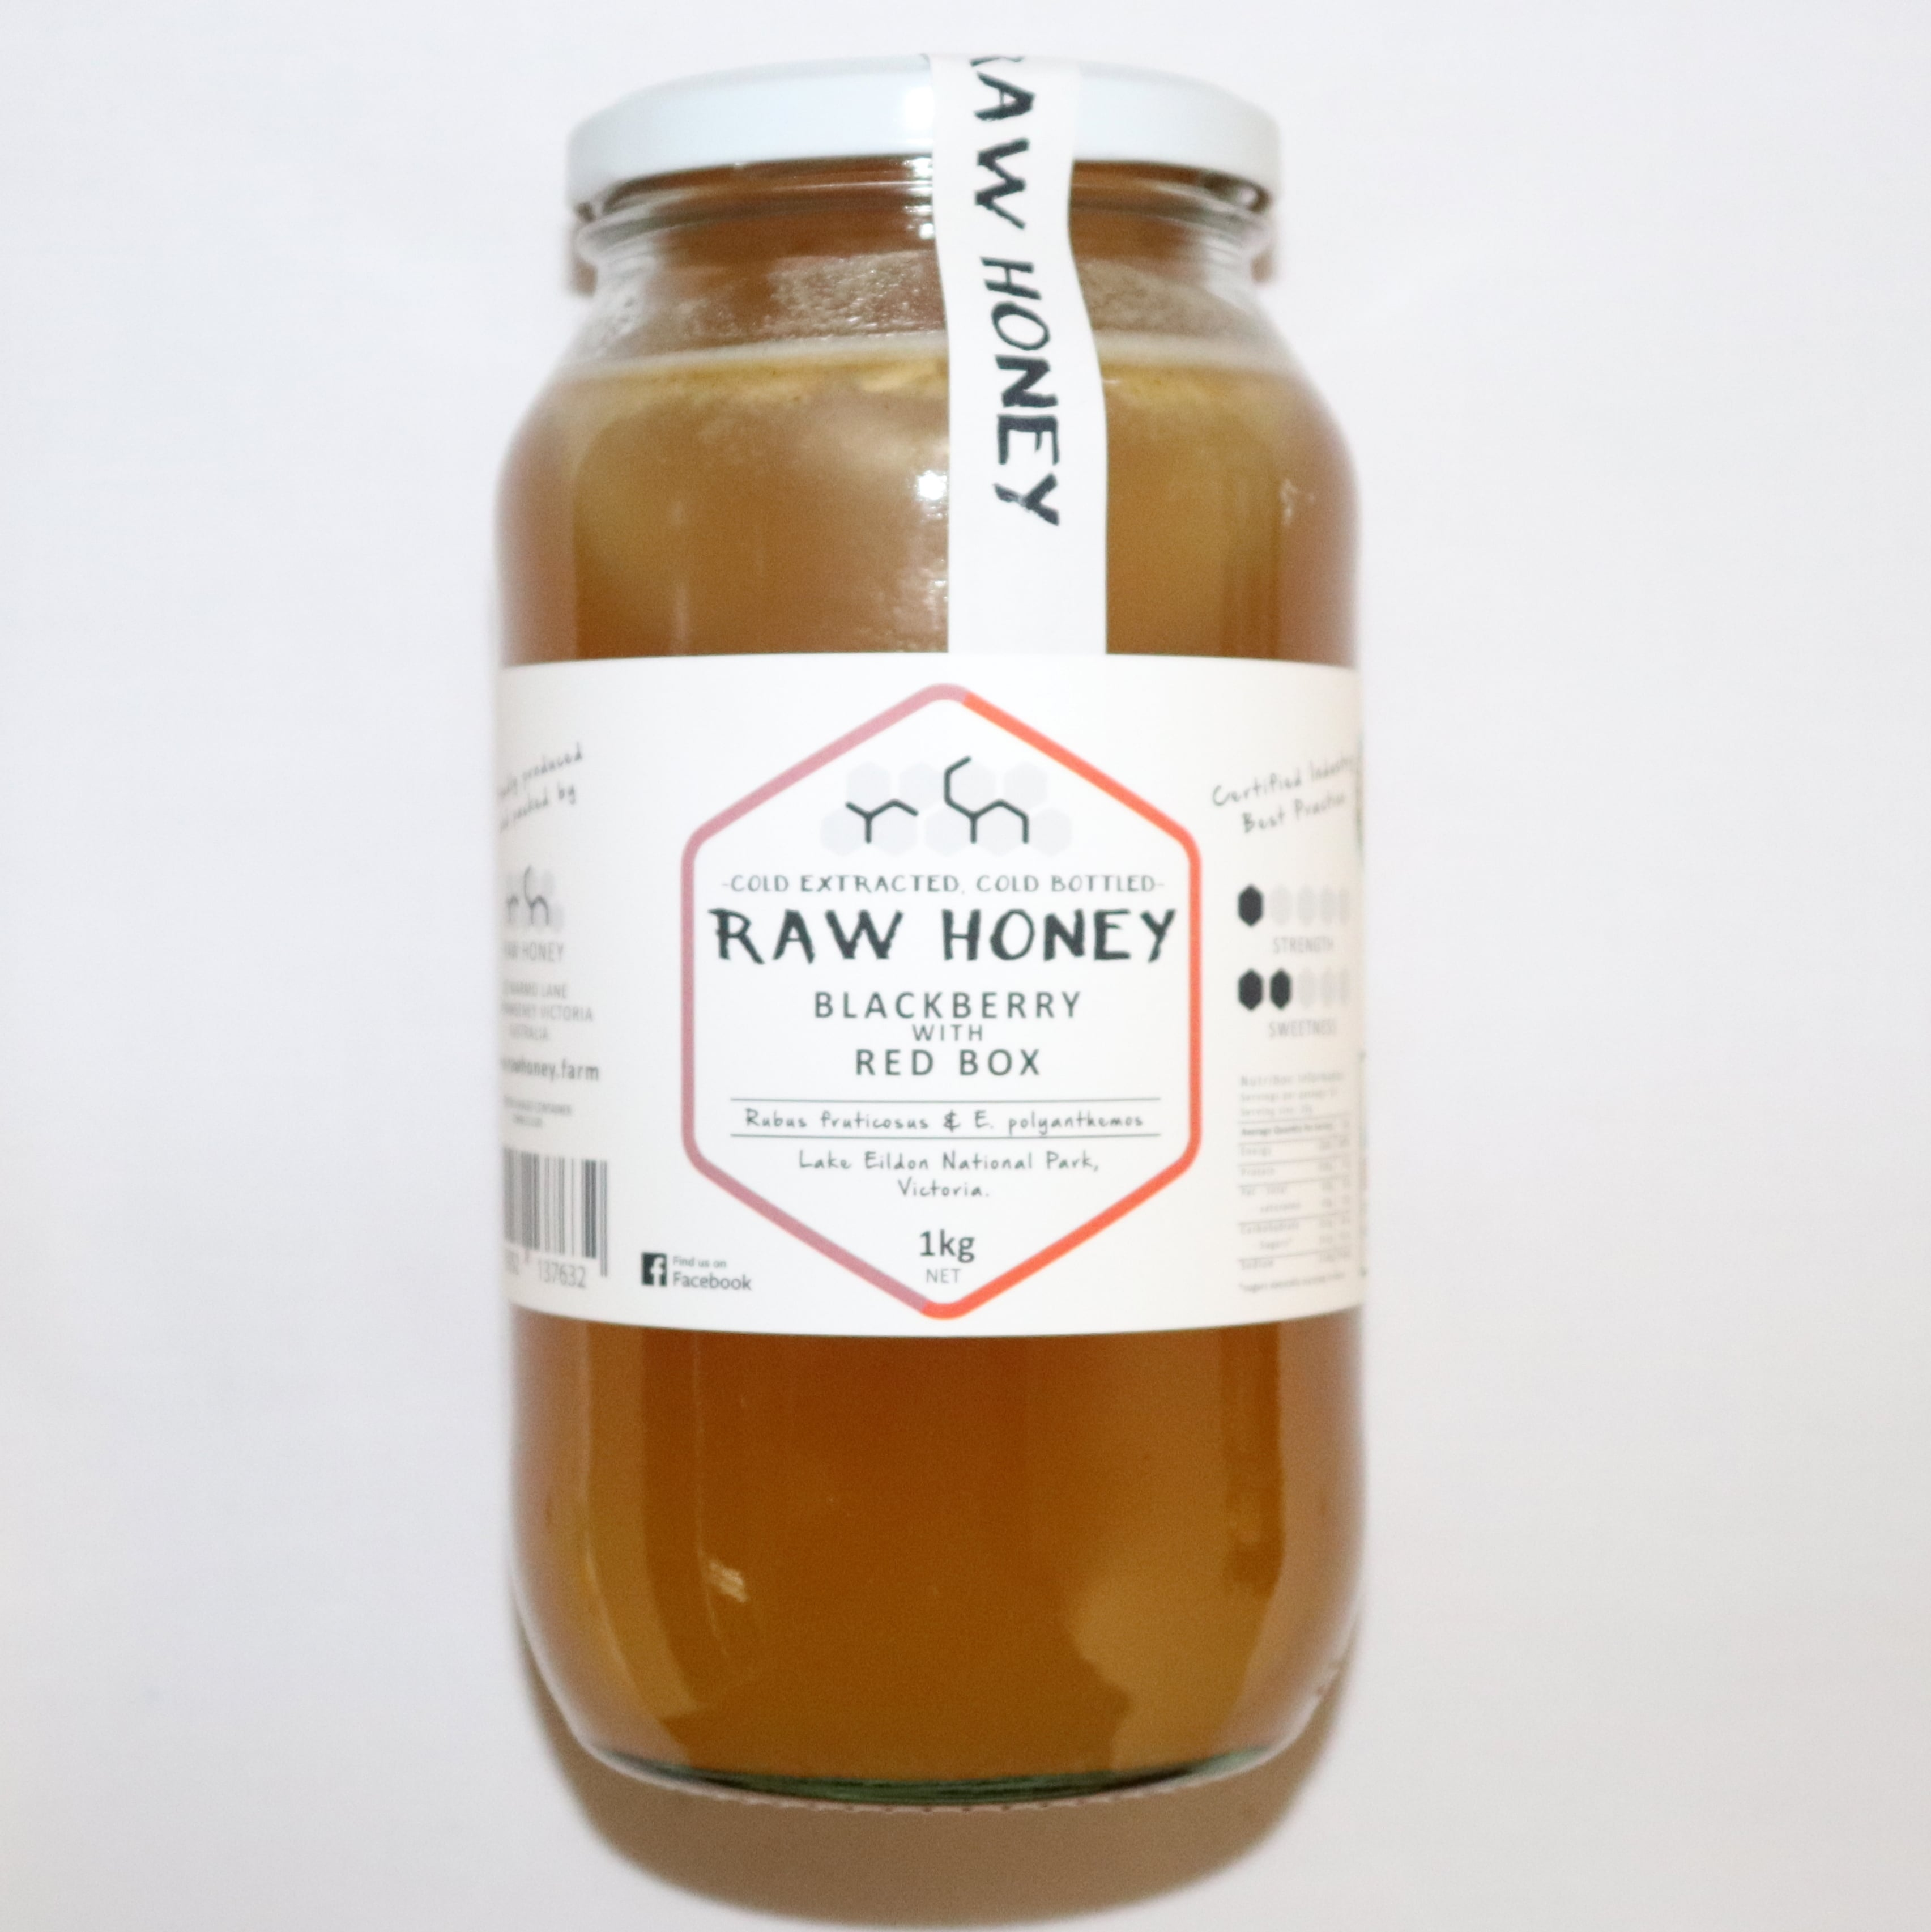 Raw Honey – Blackberry with Red Box 1kg